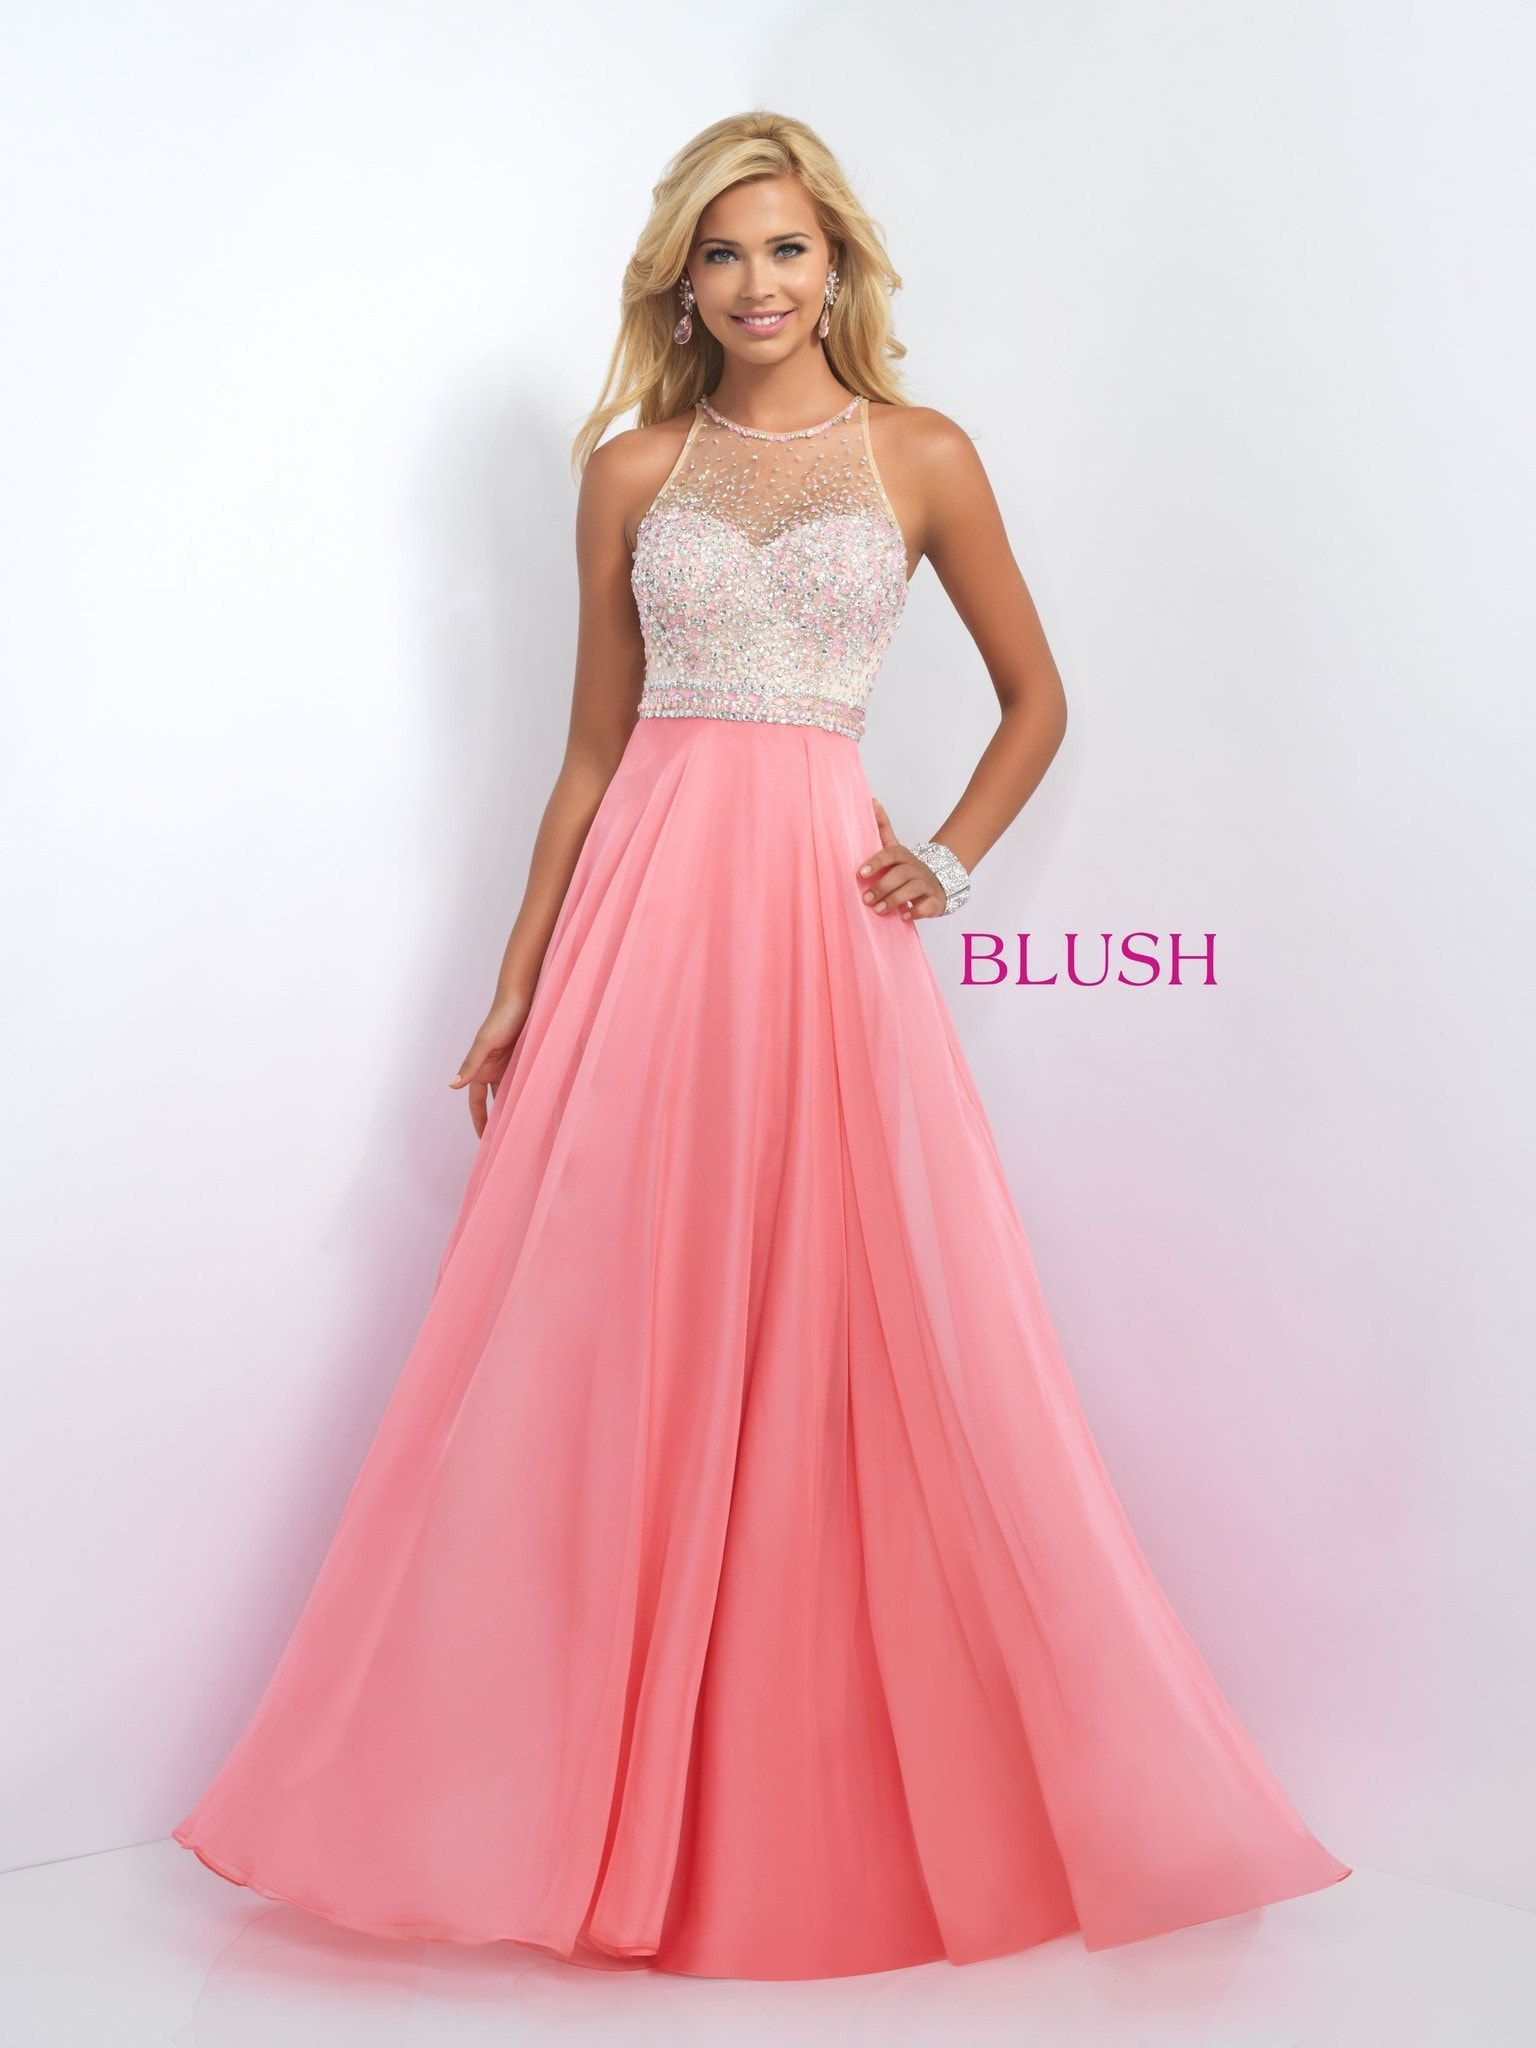 Blush Prom 11089 Coral Pink | Products | Pinterest | Blush prom ...